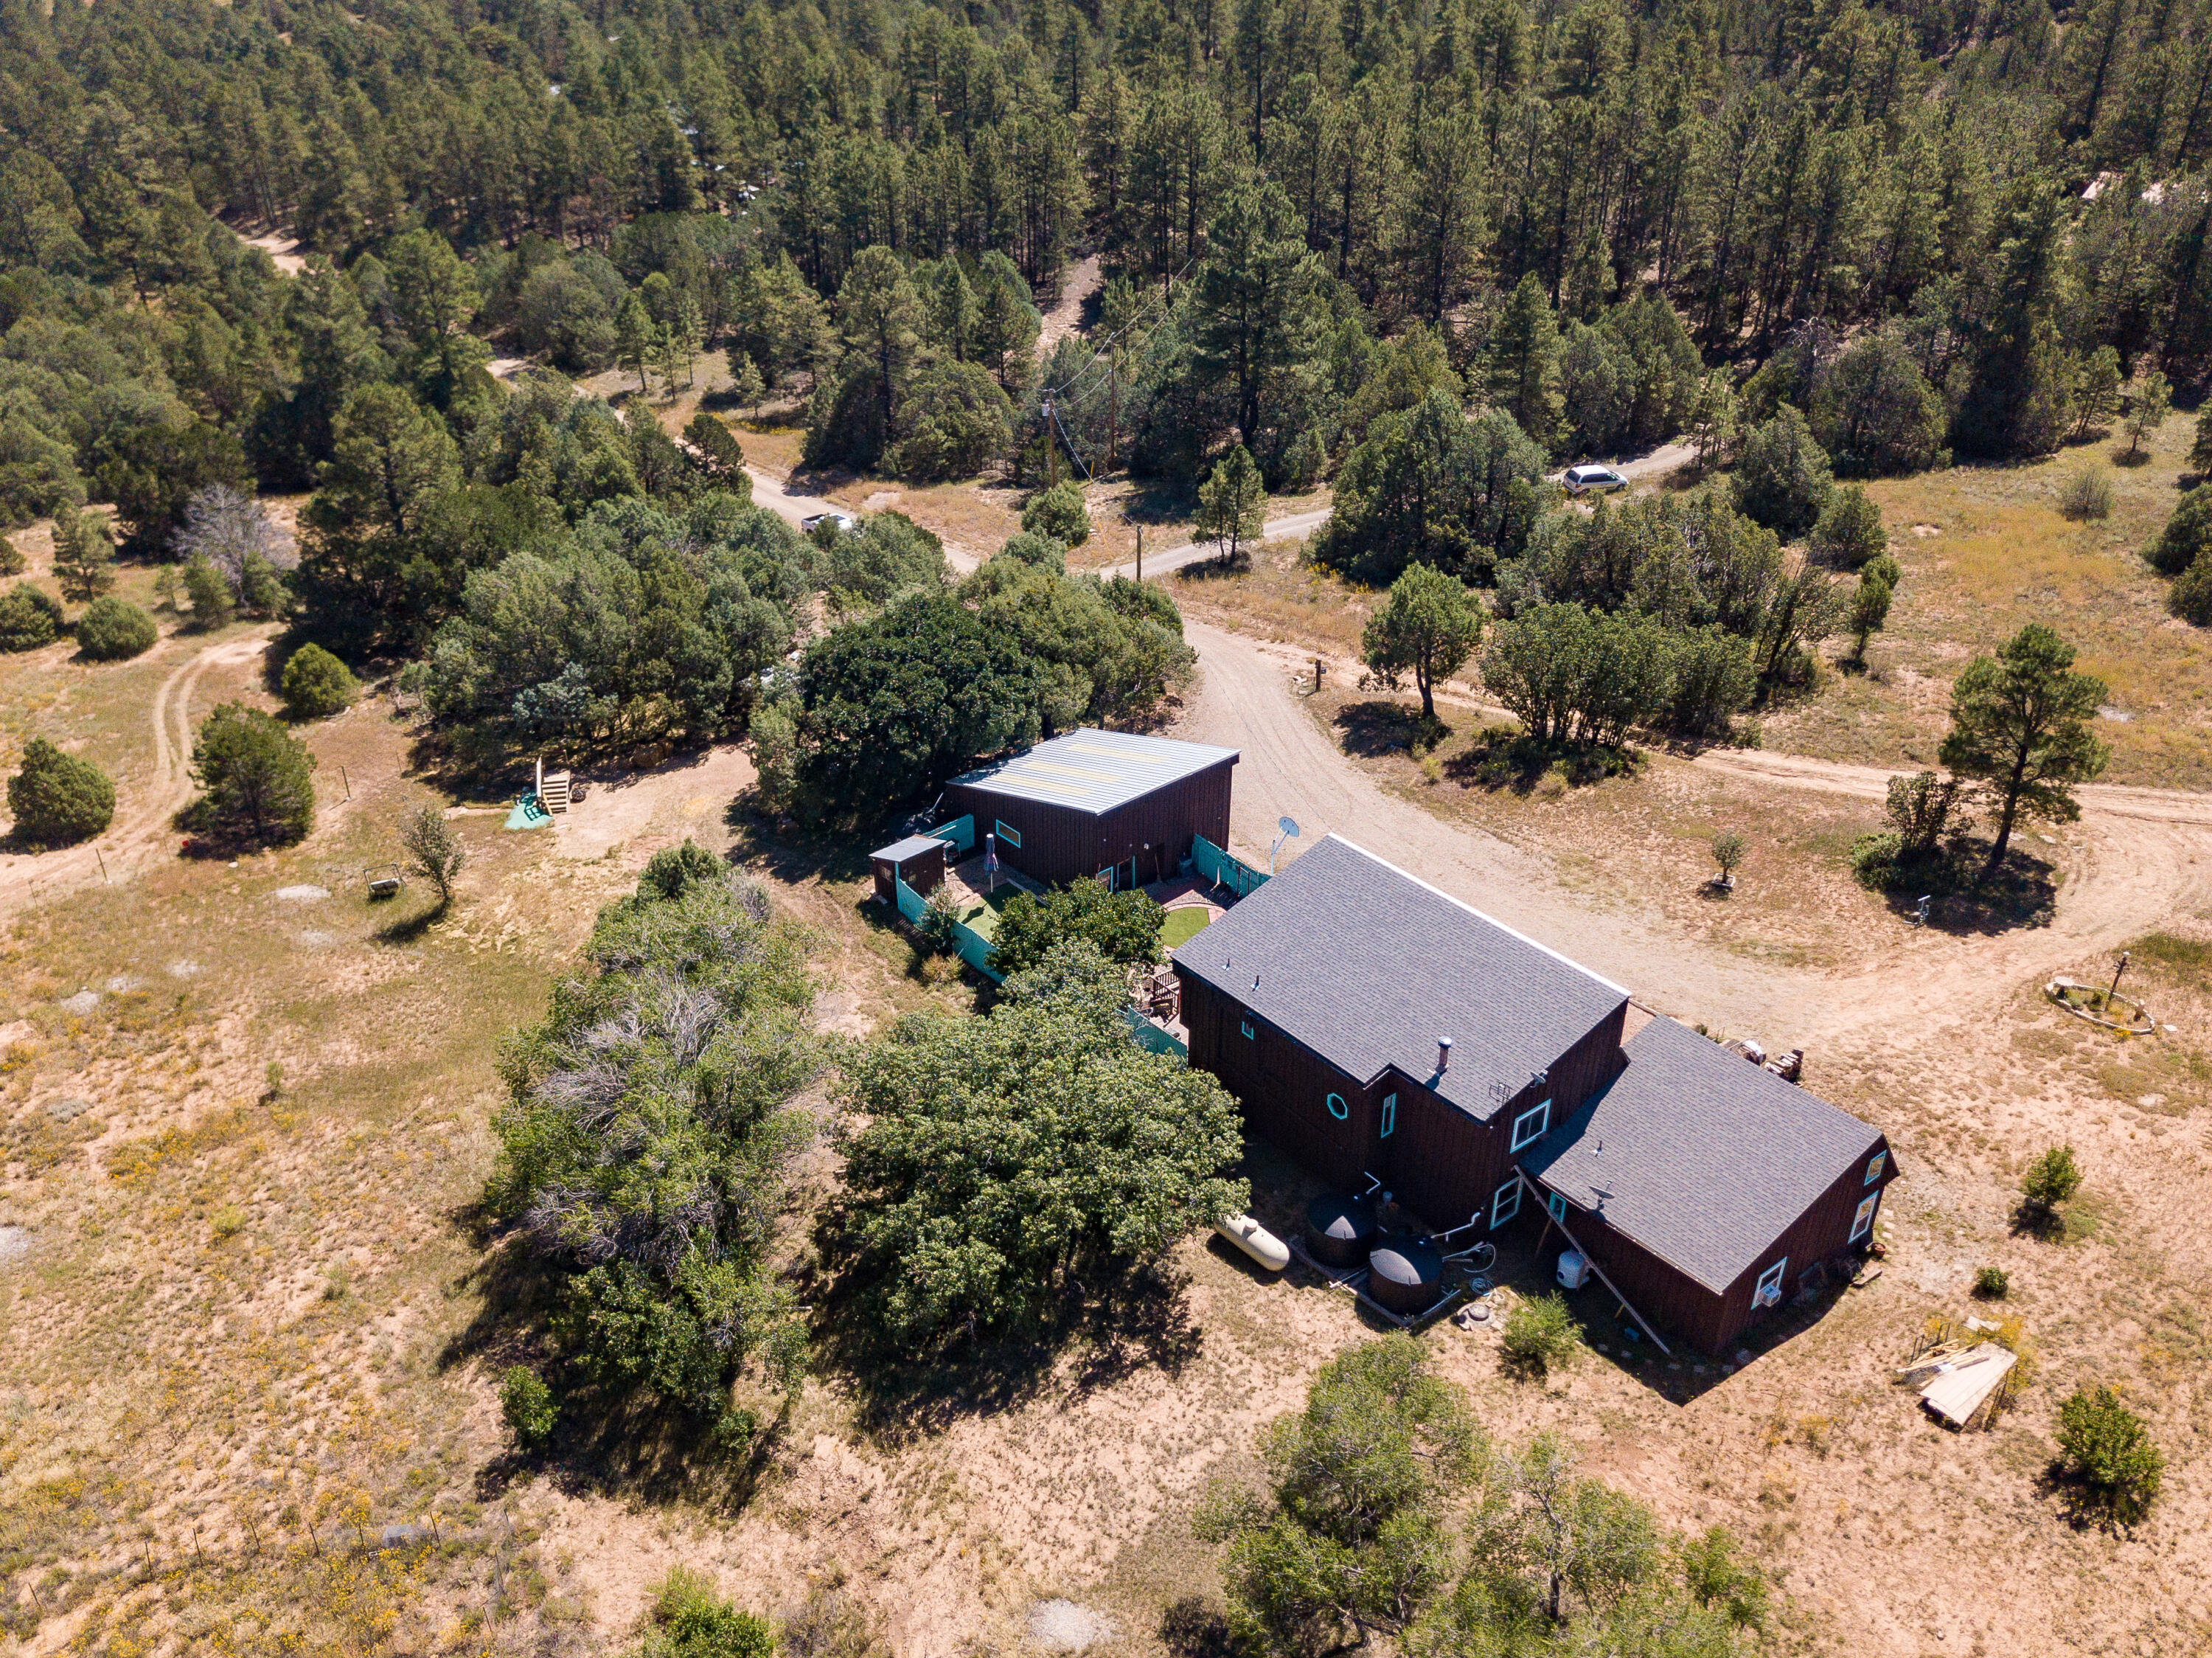 Escape to a private 5 acre estate in the wilderness of Tijeras!  This energy efficient home features solar water heating and a rain capture system for optimum efficiency.   Massive garage and workshop offers plenty of storage for mountain vehicles.  The home as dual master suites, one upstairs and one downstairs giving plenty of options for guests. The wrap around deck overlooks the fenced turf yard and surrounding wilderness.